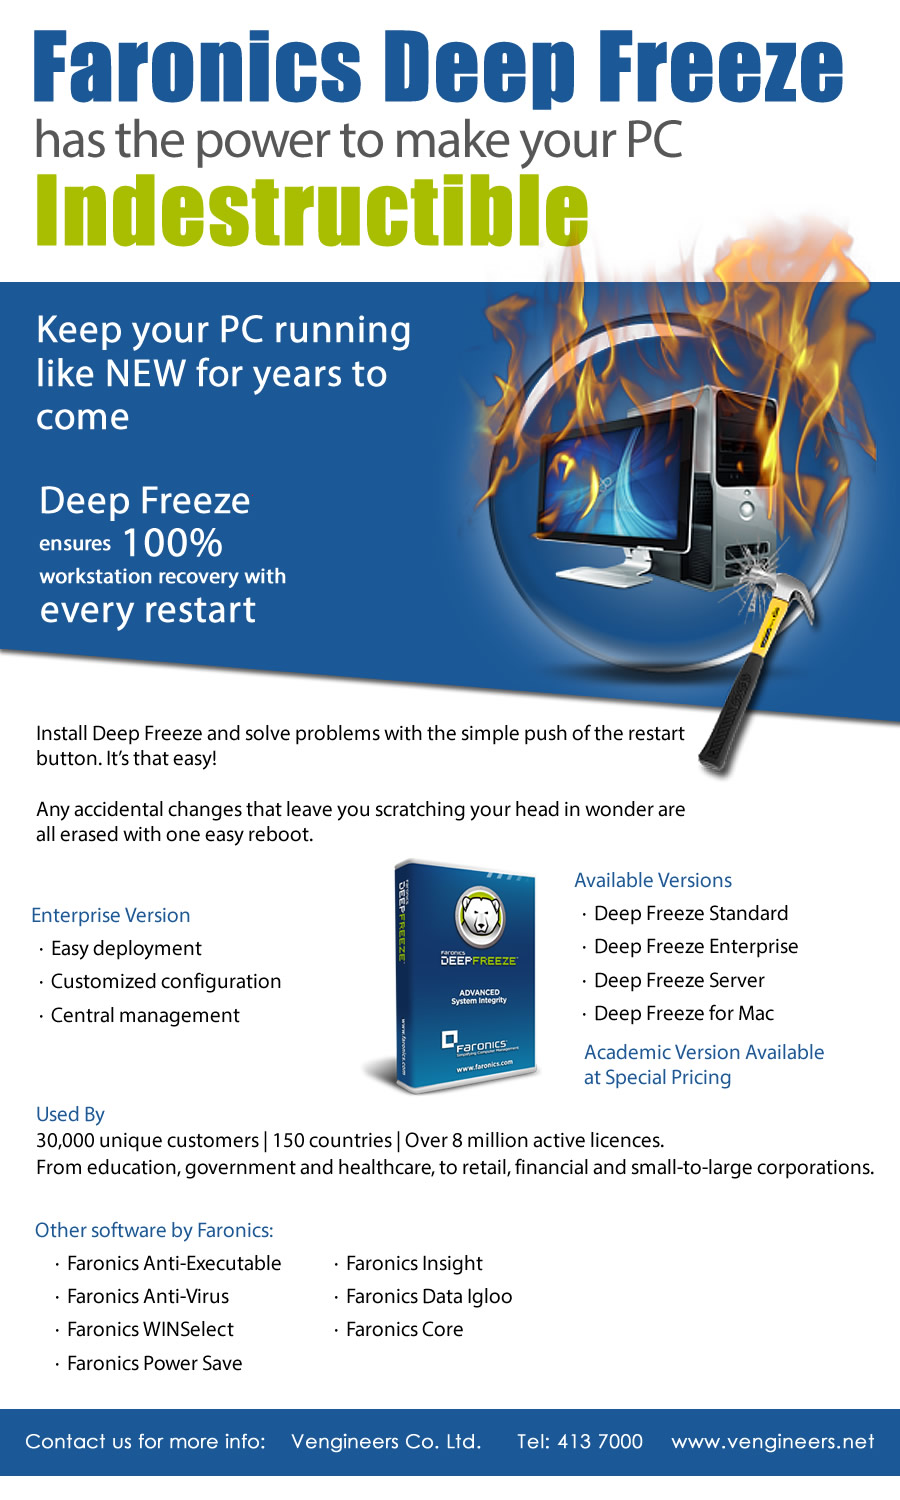 Faronics Deep Freeze Has The Power to Make Your PC Indestructible